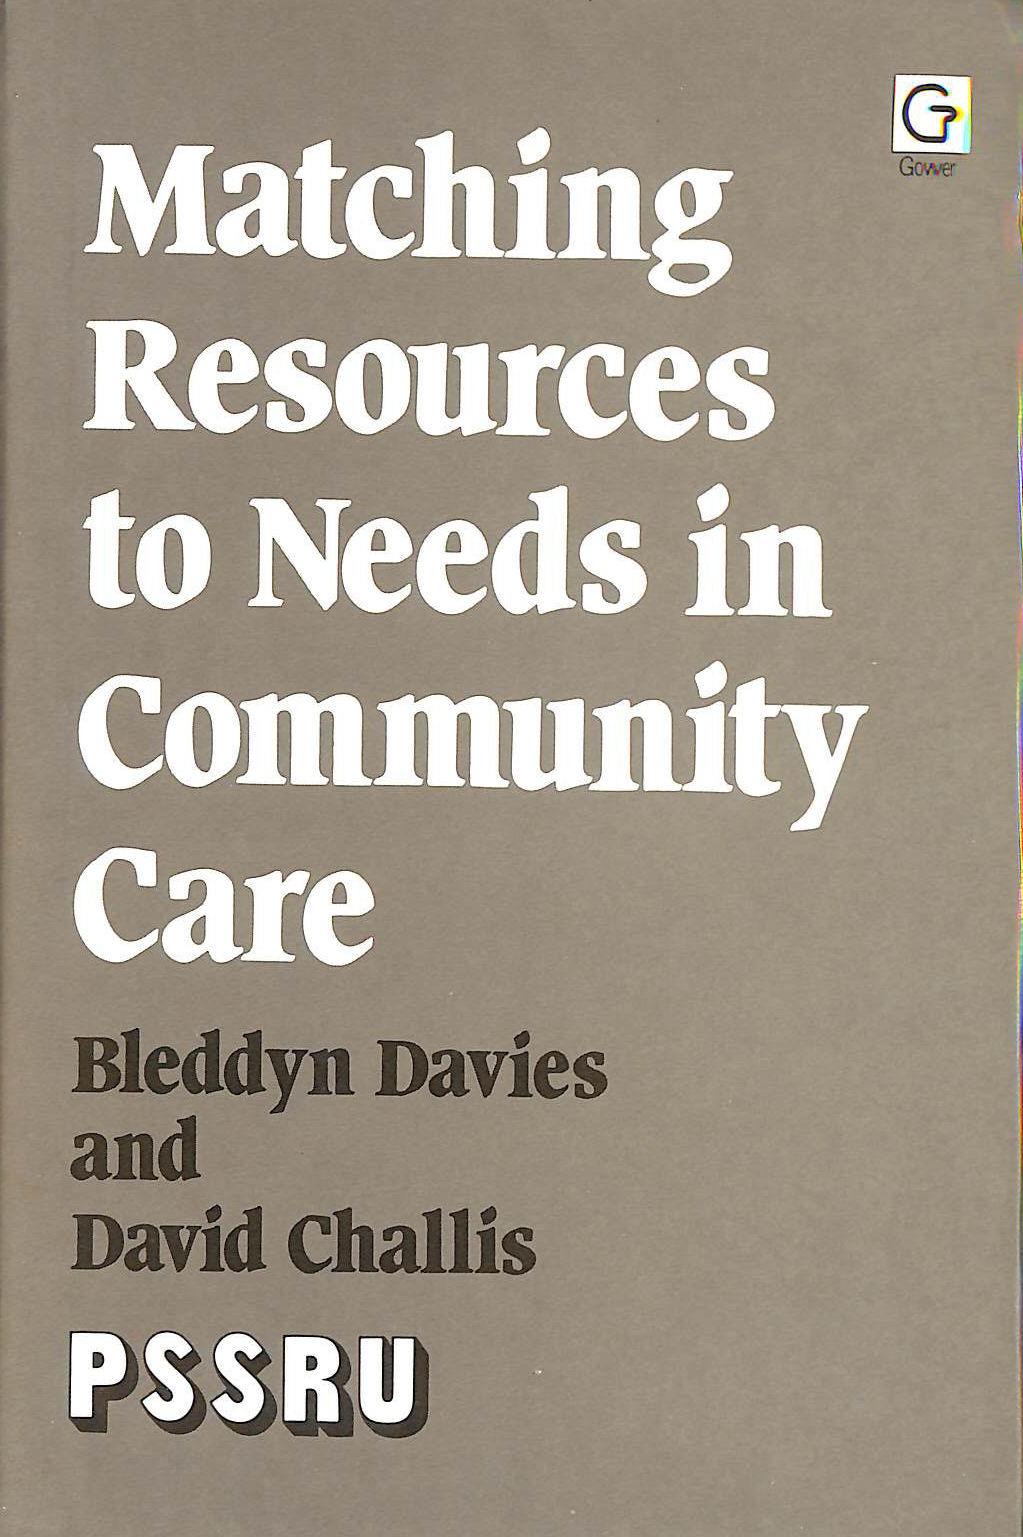 Image for Matching Resources to Needs in Community Care